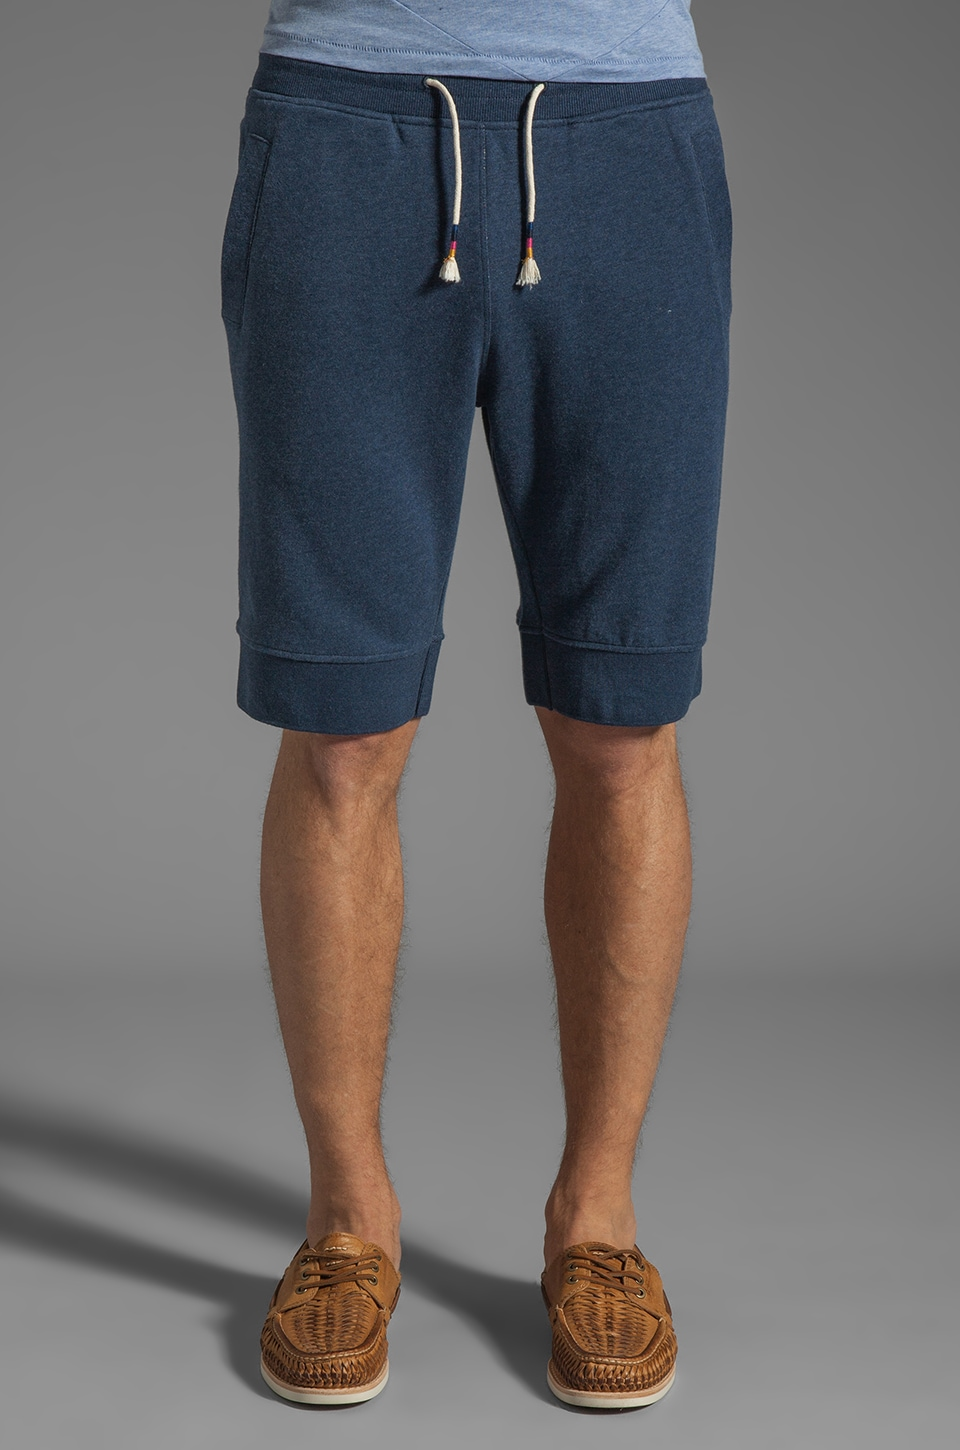 Folk Track Short in Navy Multi